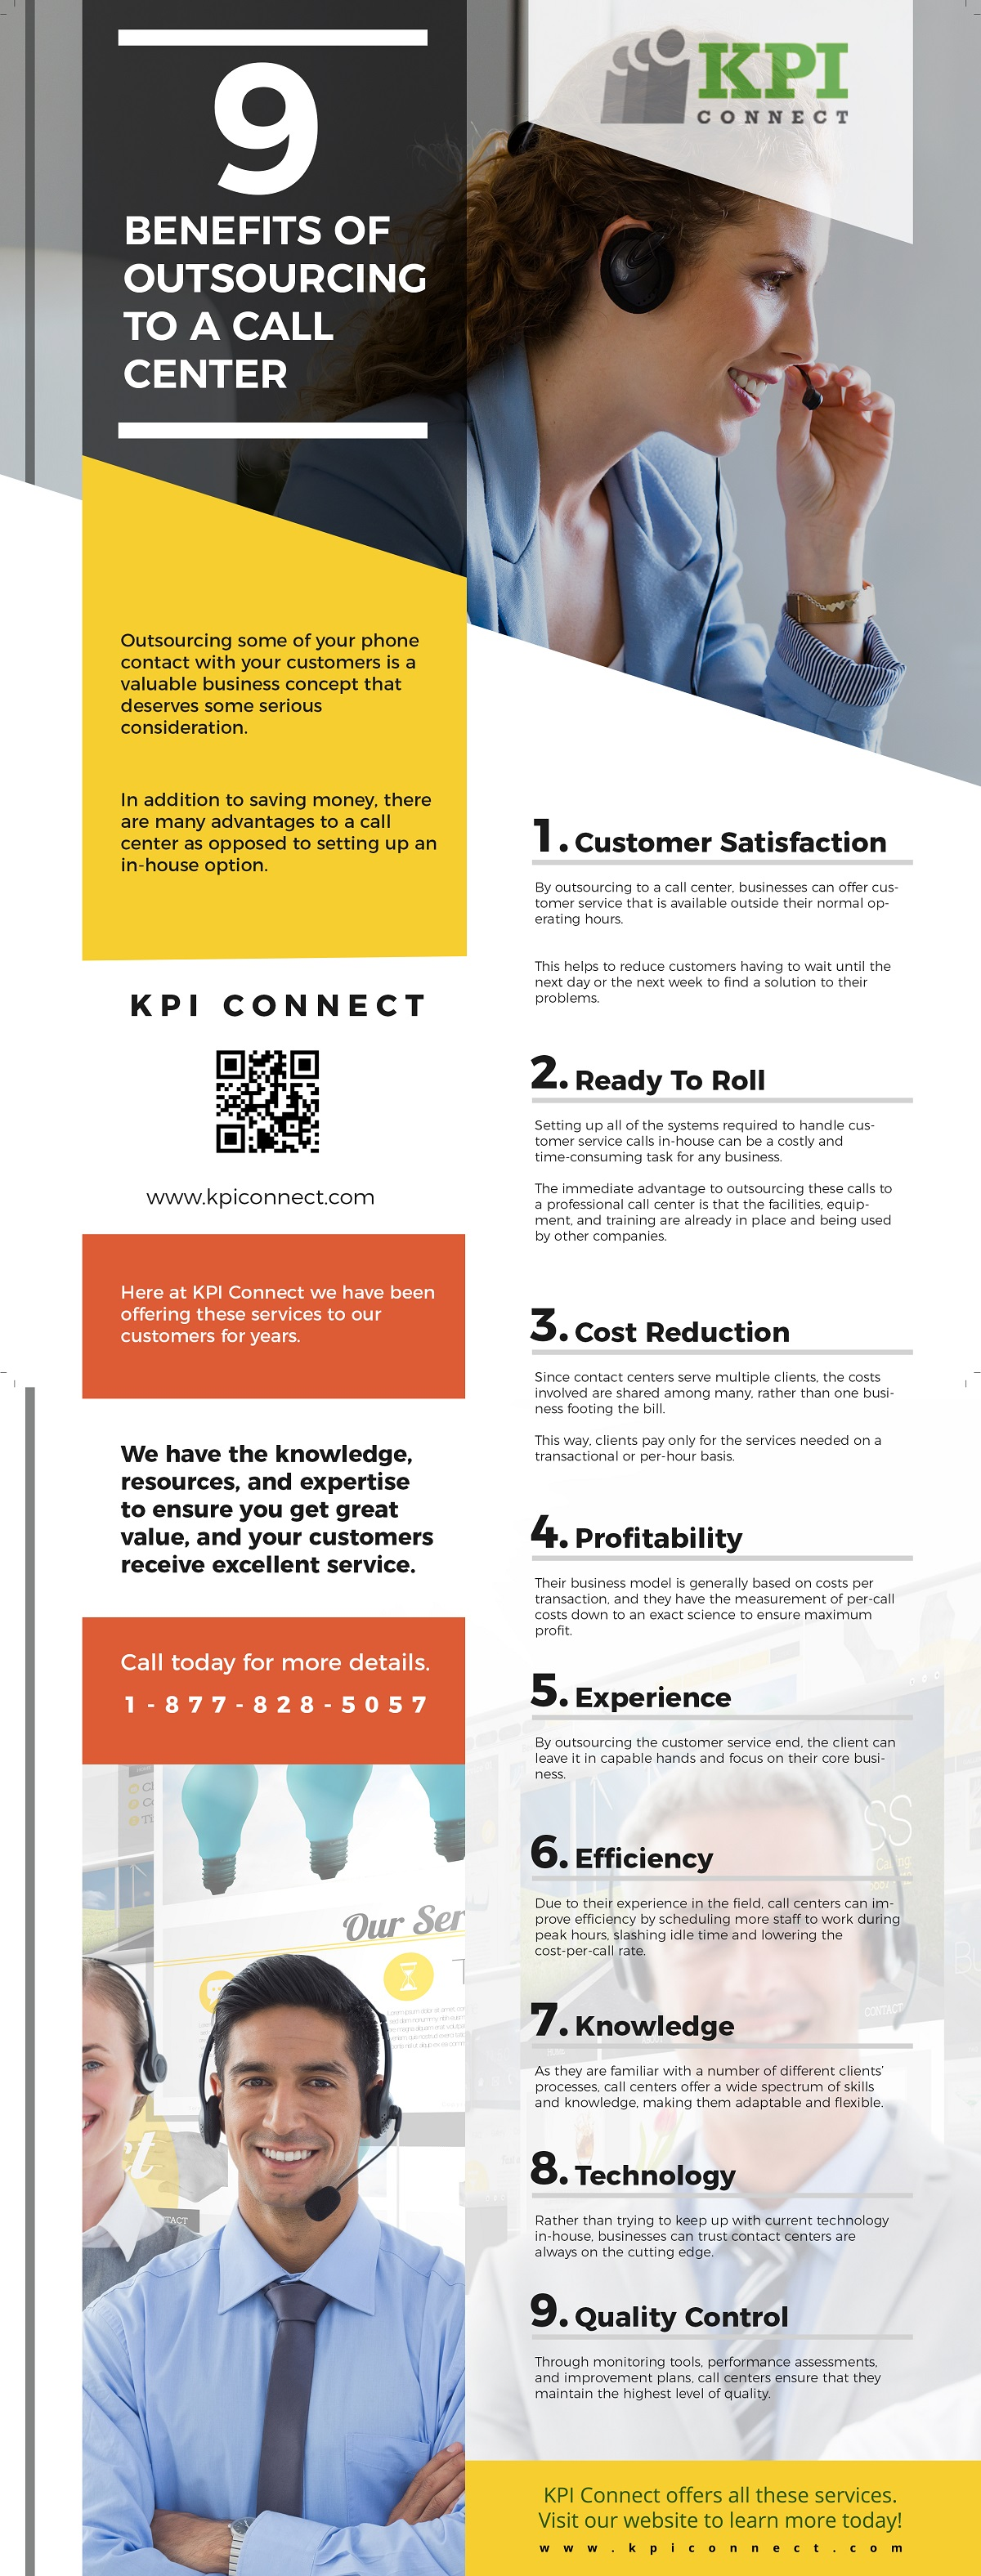 Infographic reviewing benefits of having another company help your customers over the phone.